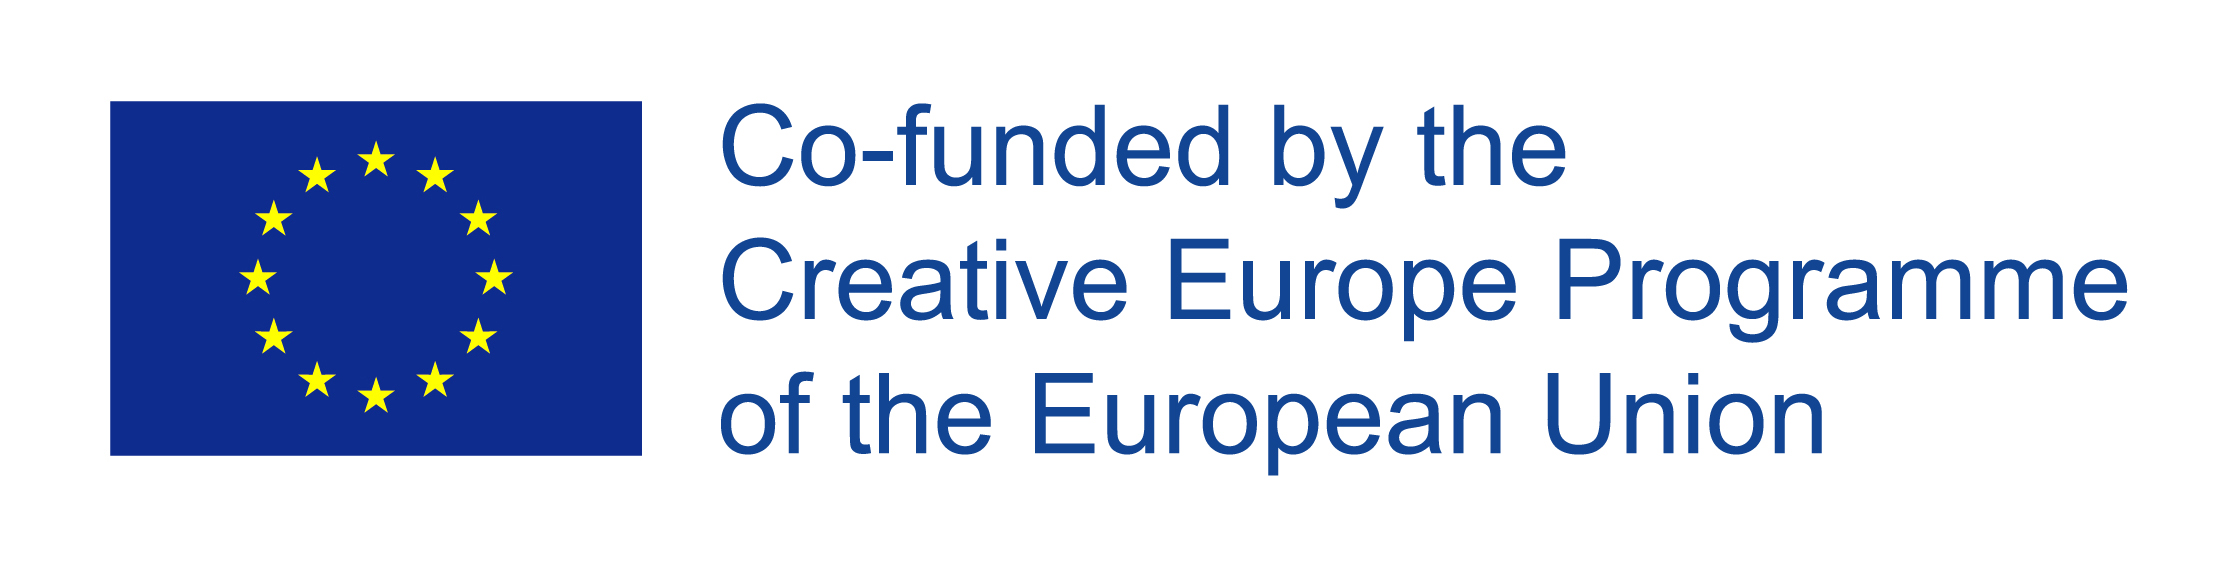 Image result for co-funded by the creative europe programme of the european union